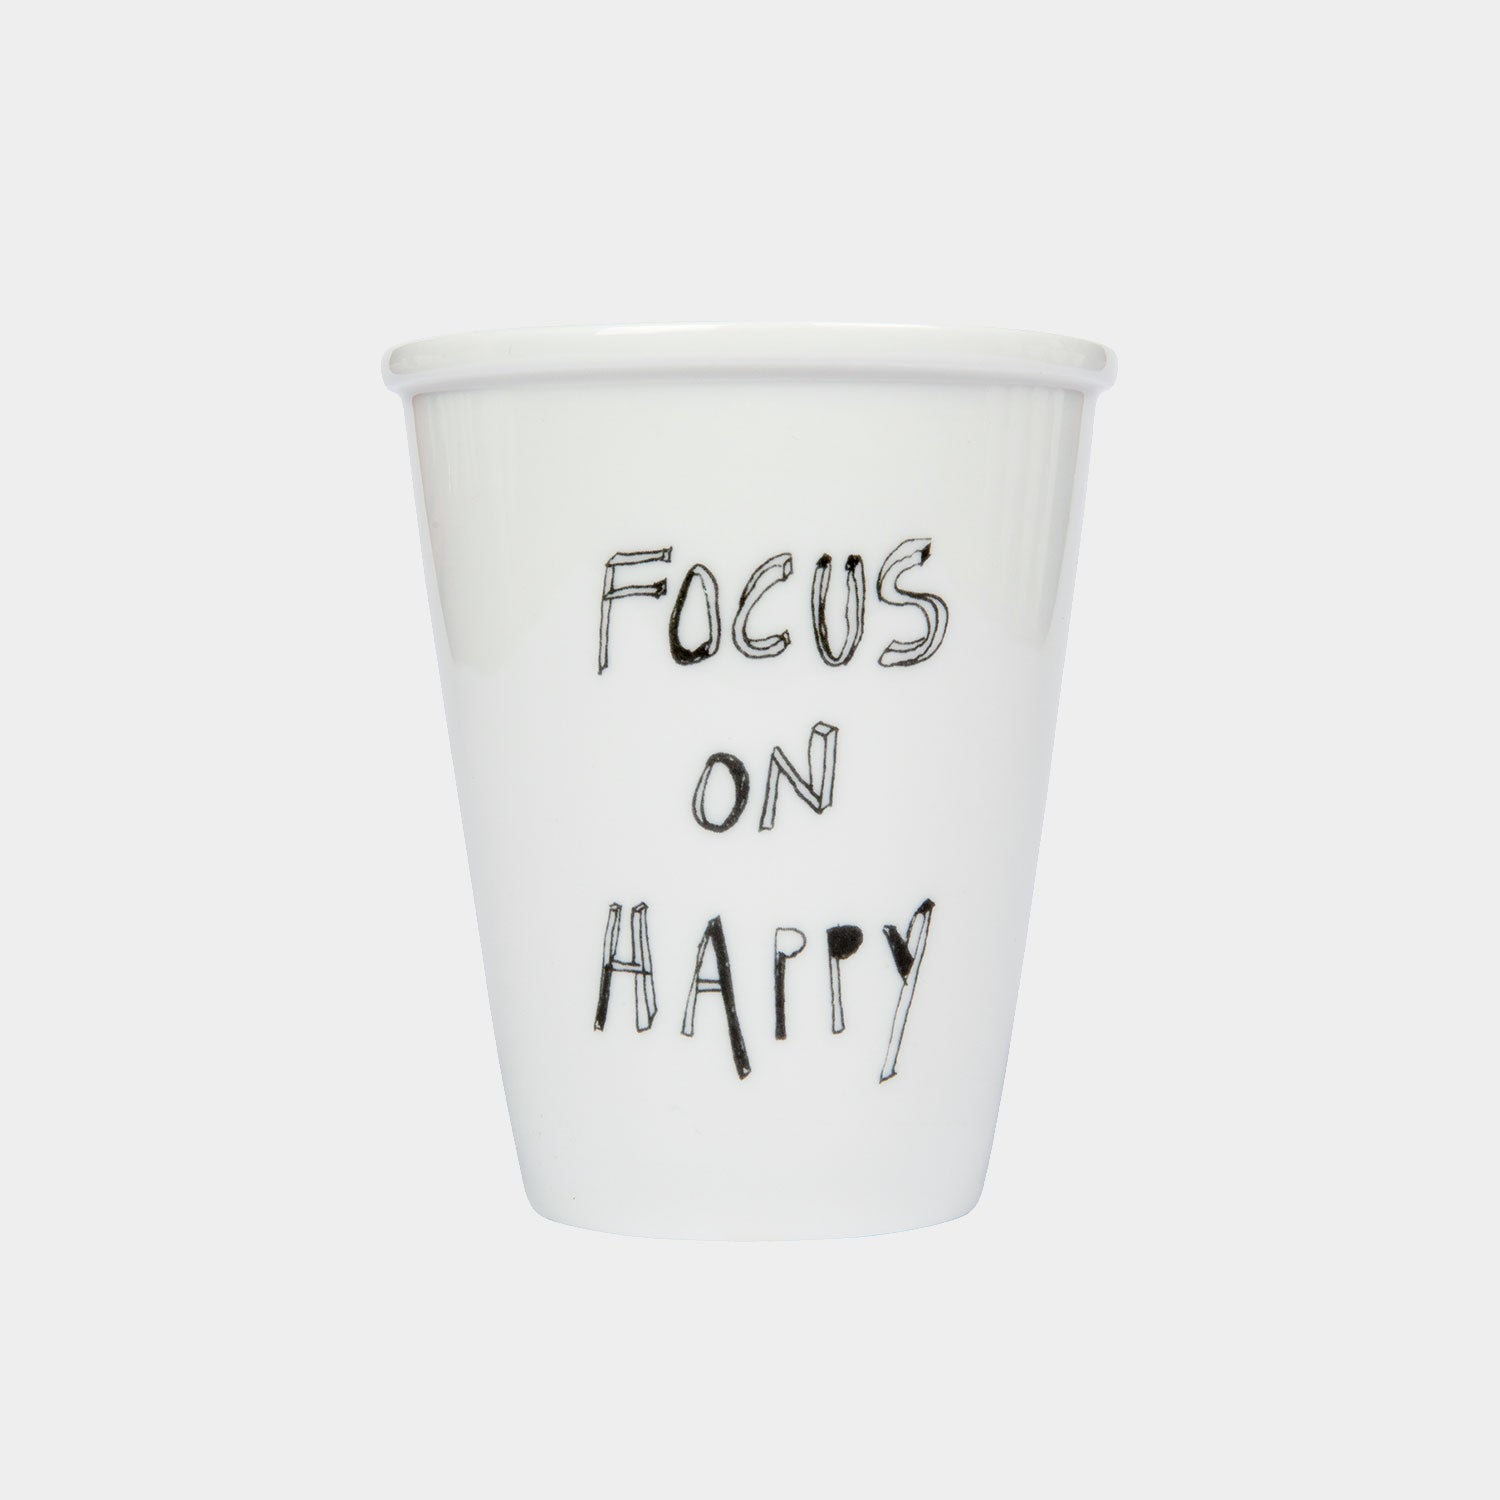 Helen B Tasse, focus on happy